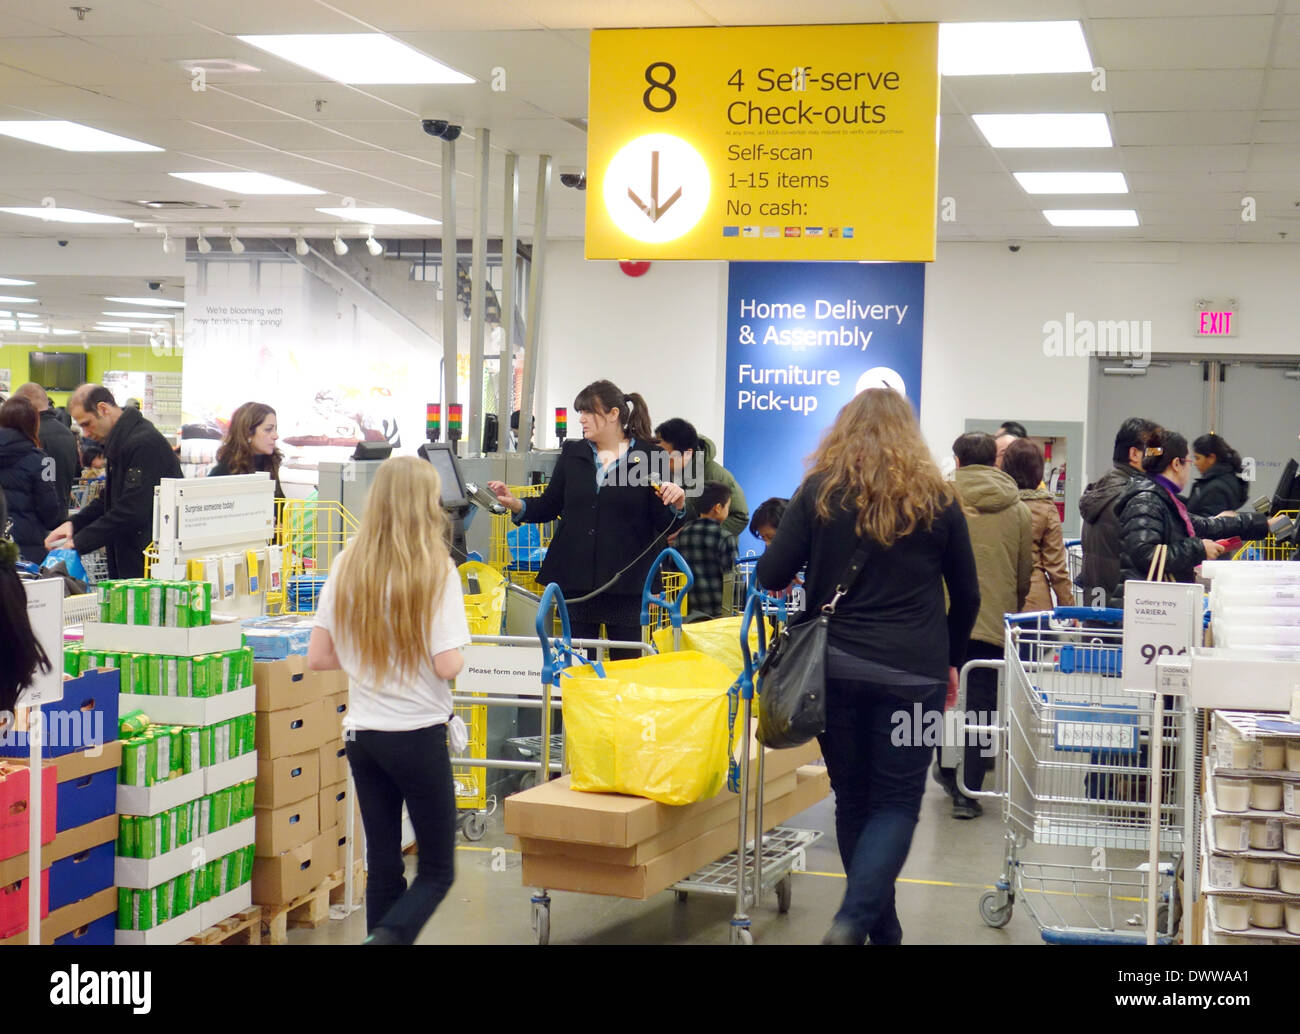 people checking out at an ikea store in toronto canada stock photo royalty free image. Black Bedroom Furniture Sets. Home Design Ideas